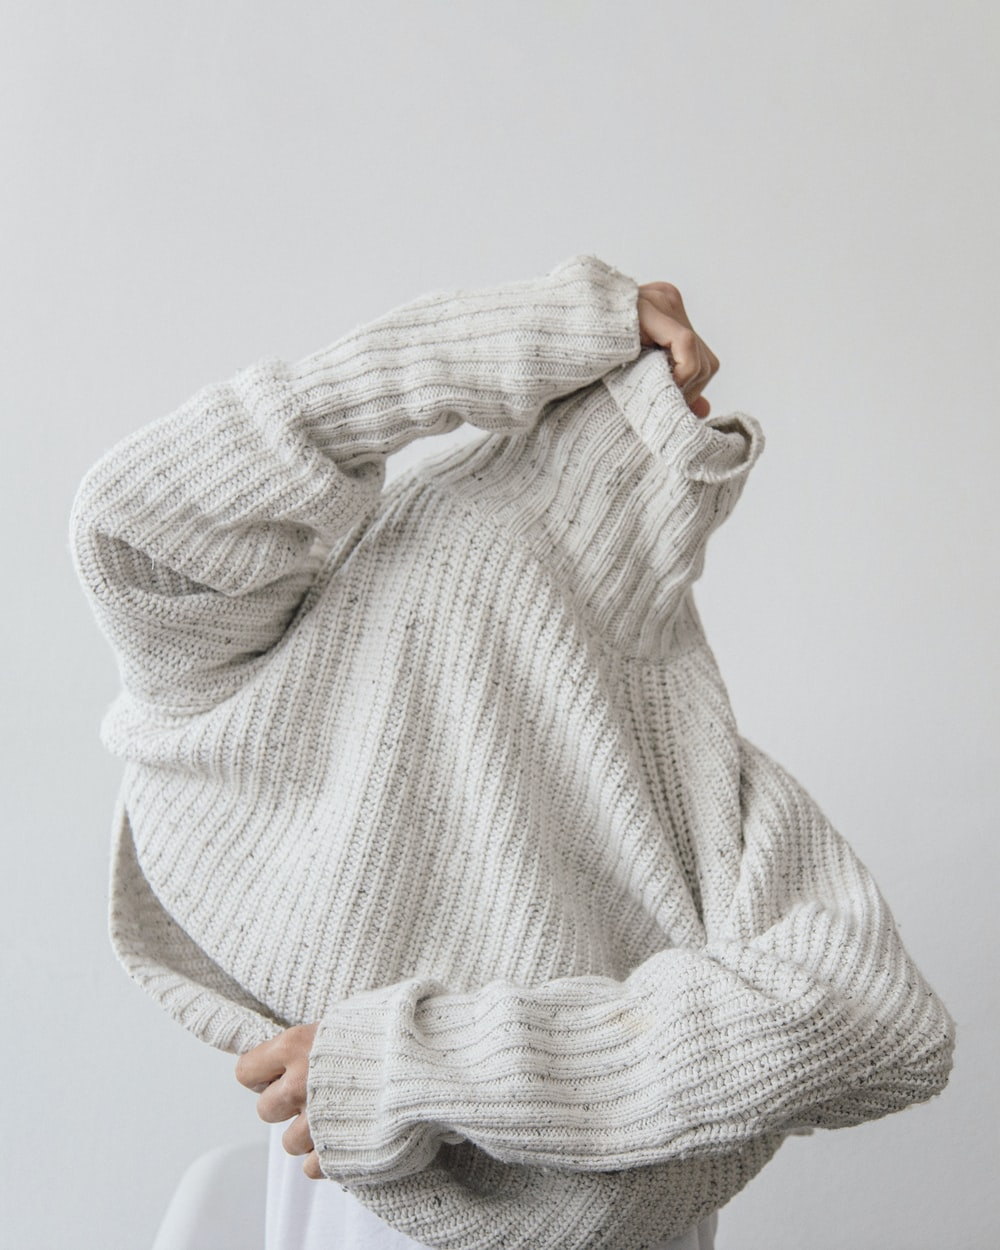 person wearing grey knit sweater